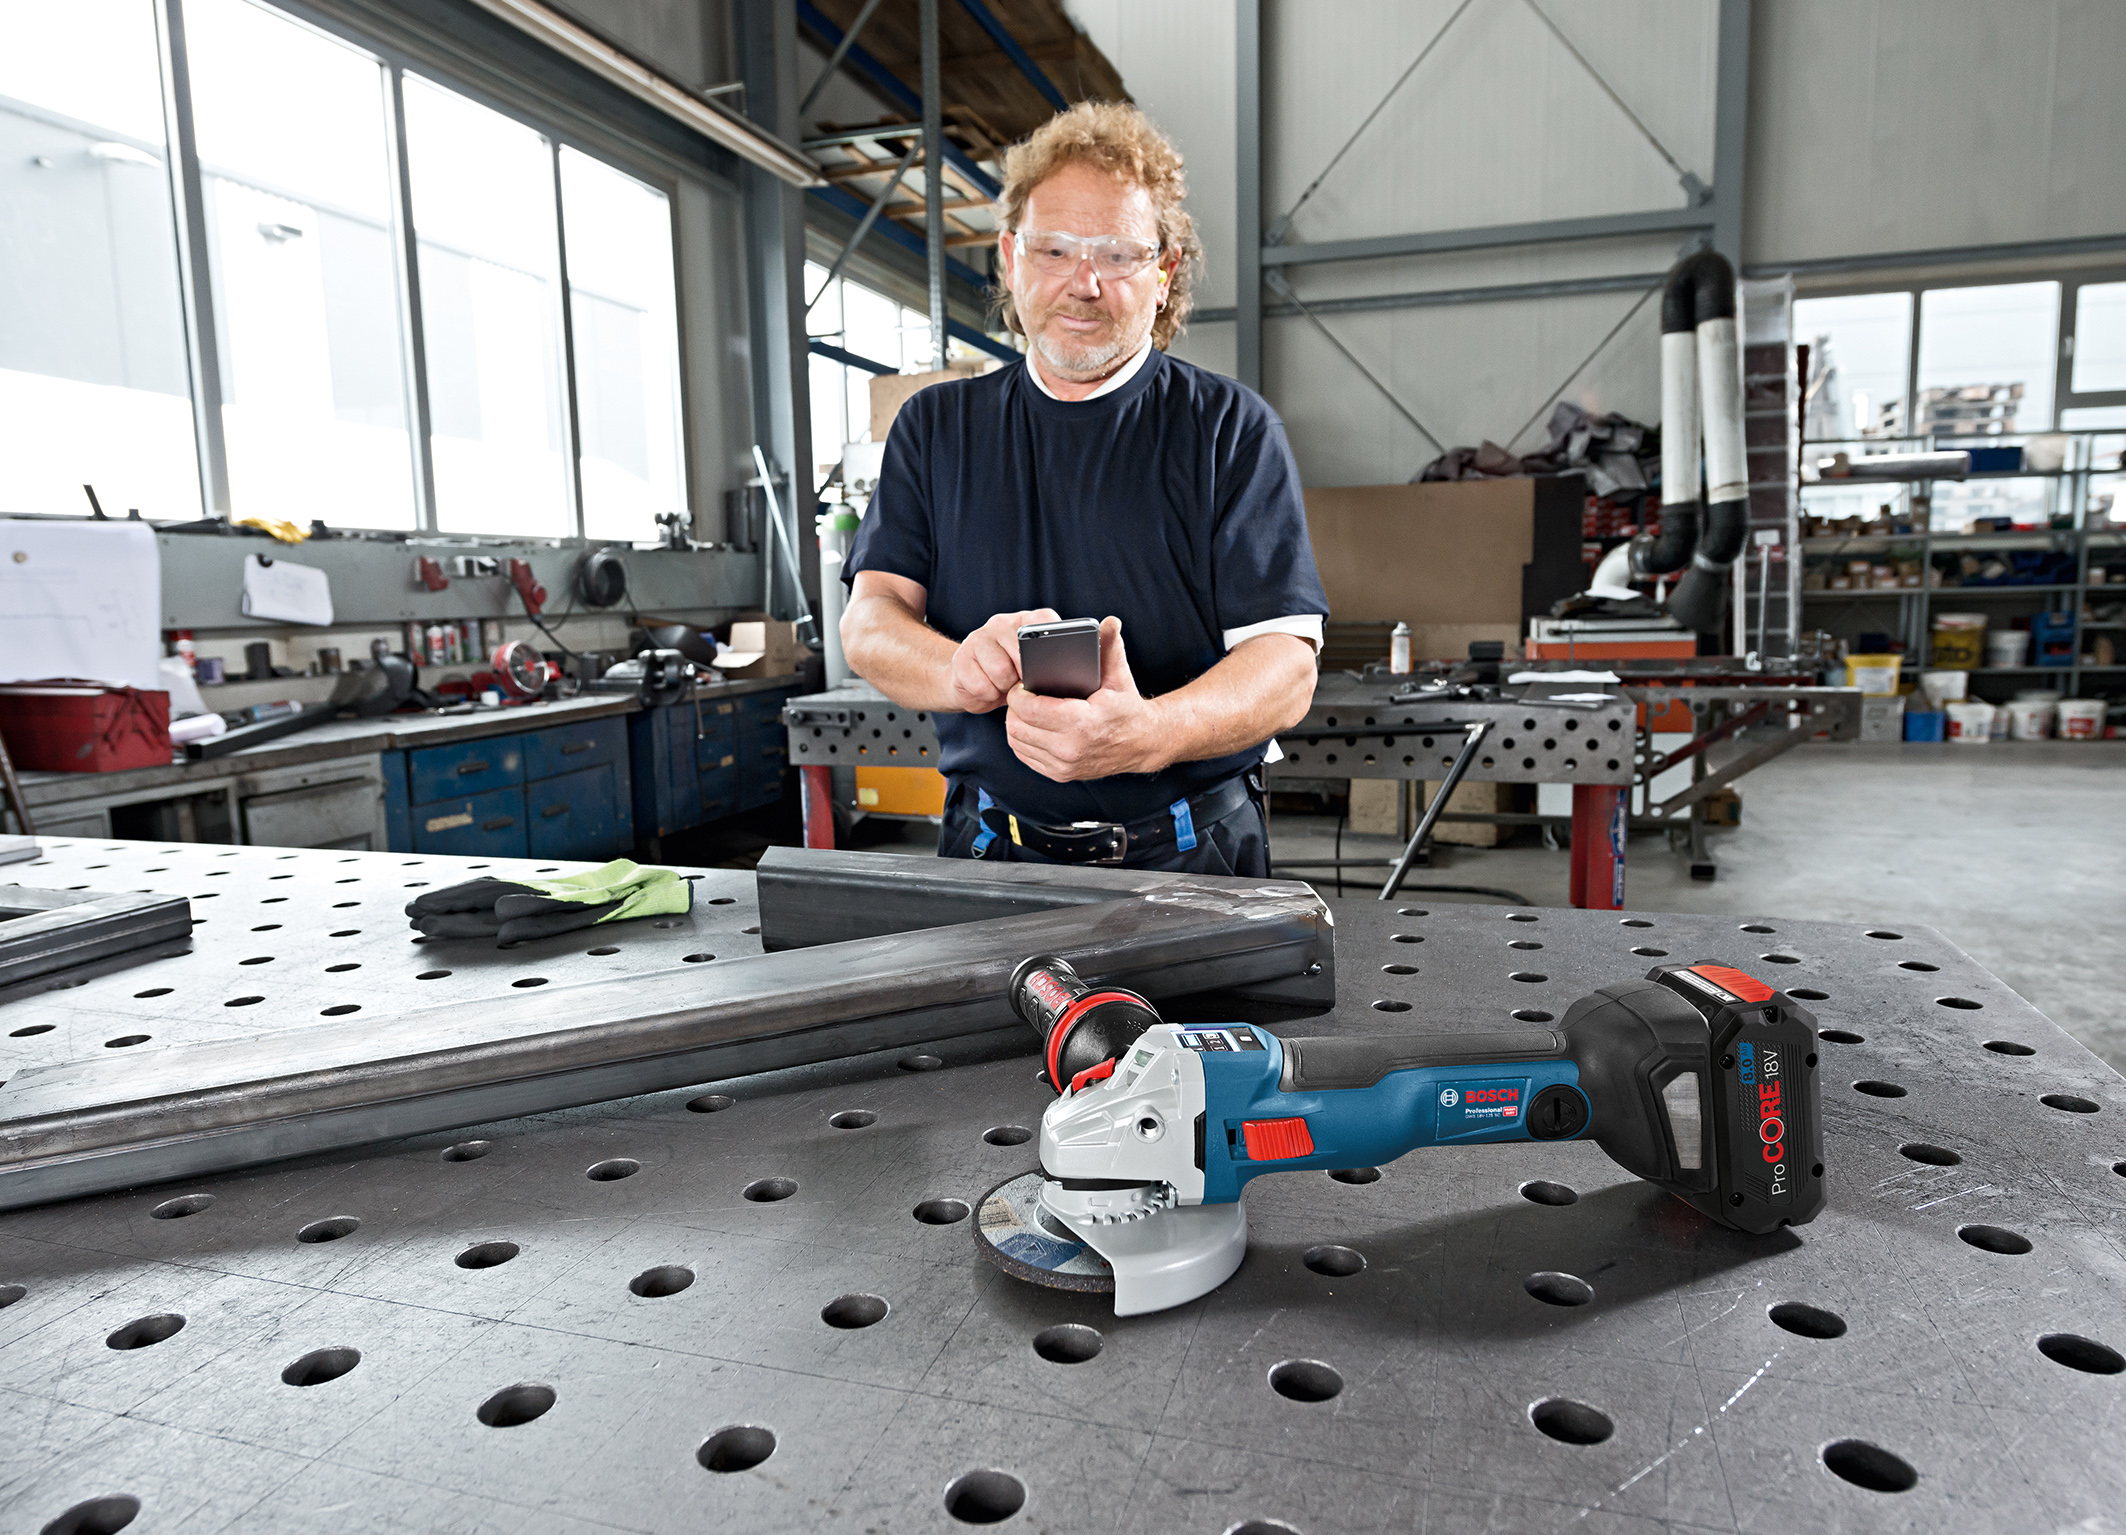 Added value thanks to connected power tools and services from Bosch: Individual configuration and transparency when using the tool